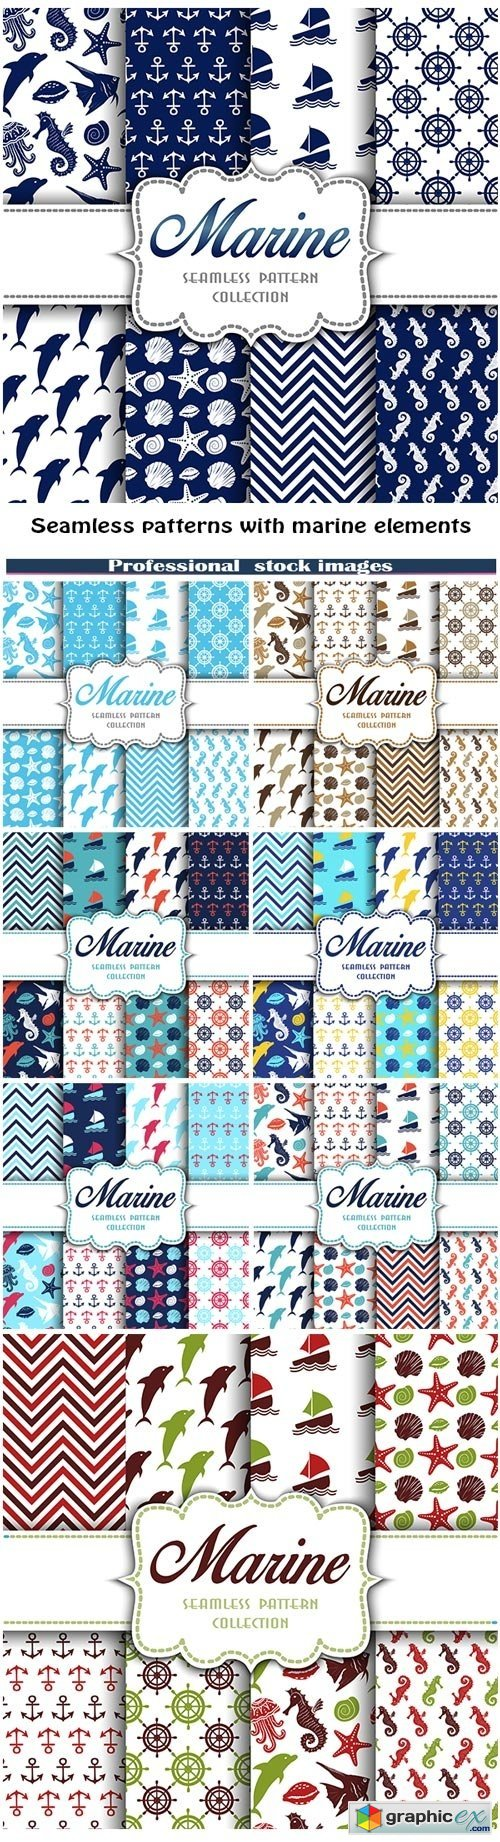 Seamless patterns with marine elements